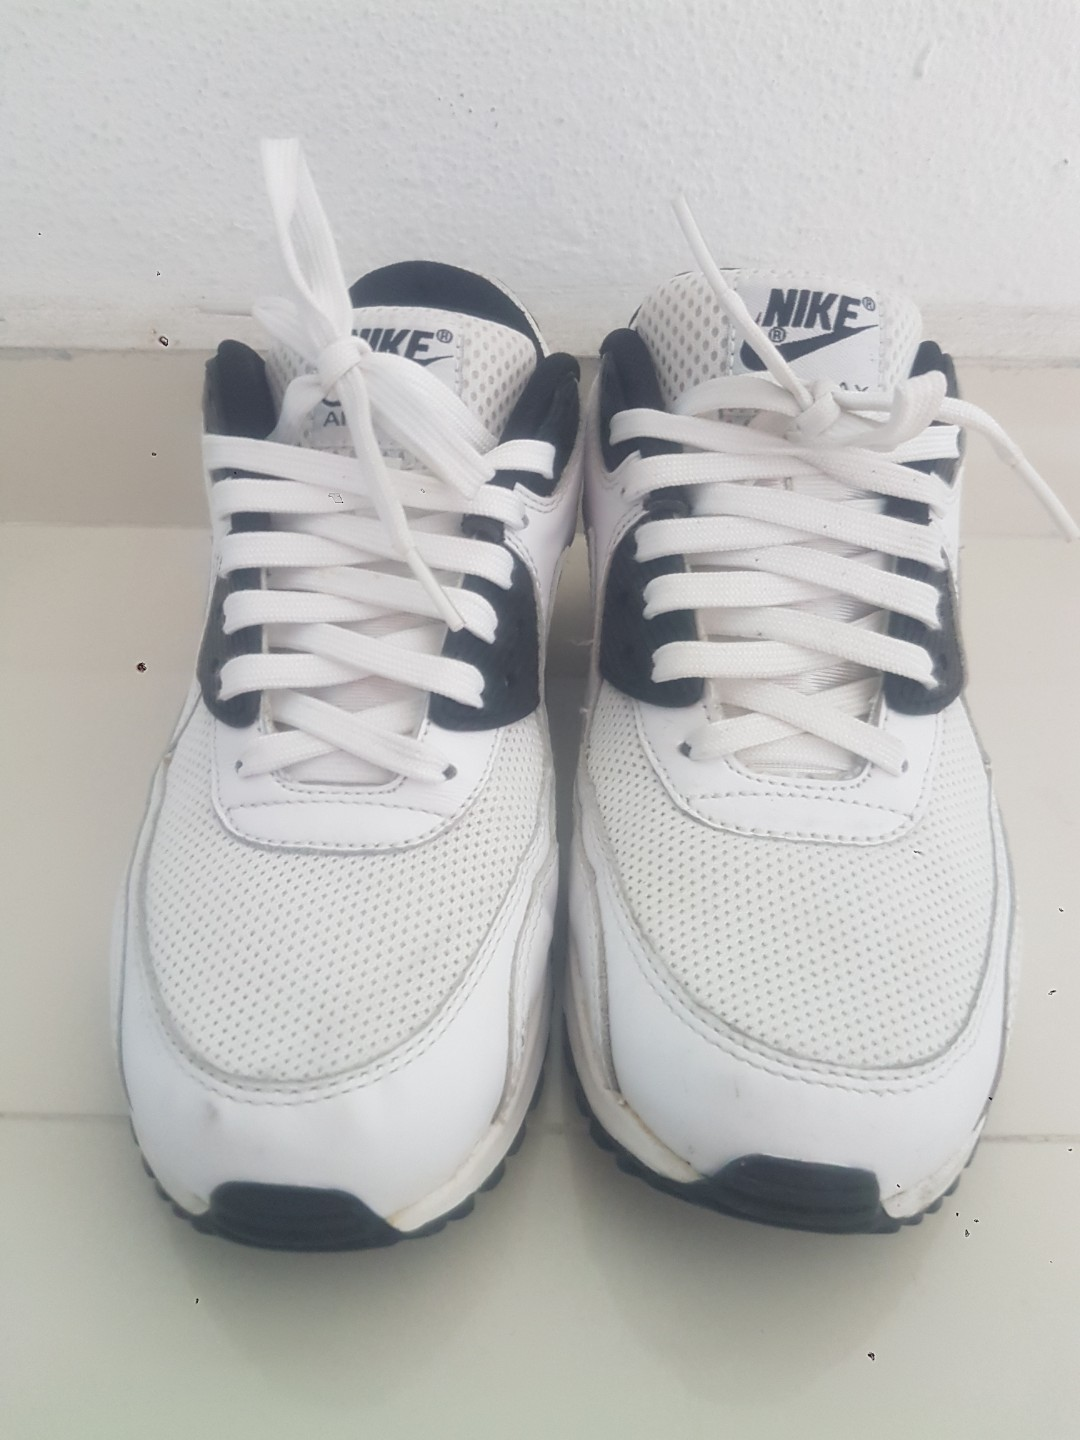 c82300a924 US8.5 Nike Air Max, Men's Fashion, Footwear, Others on Carousell